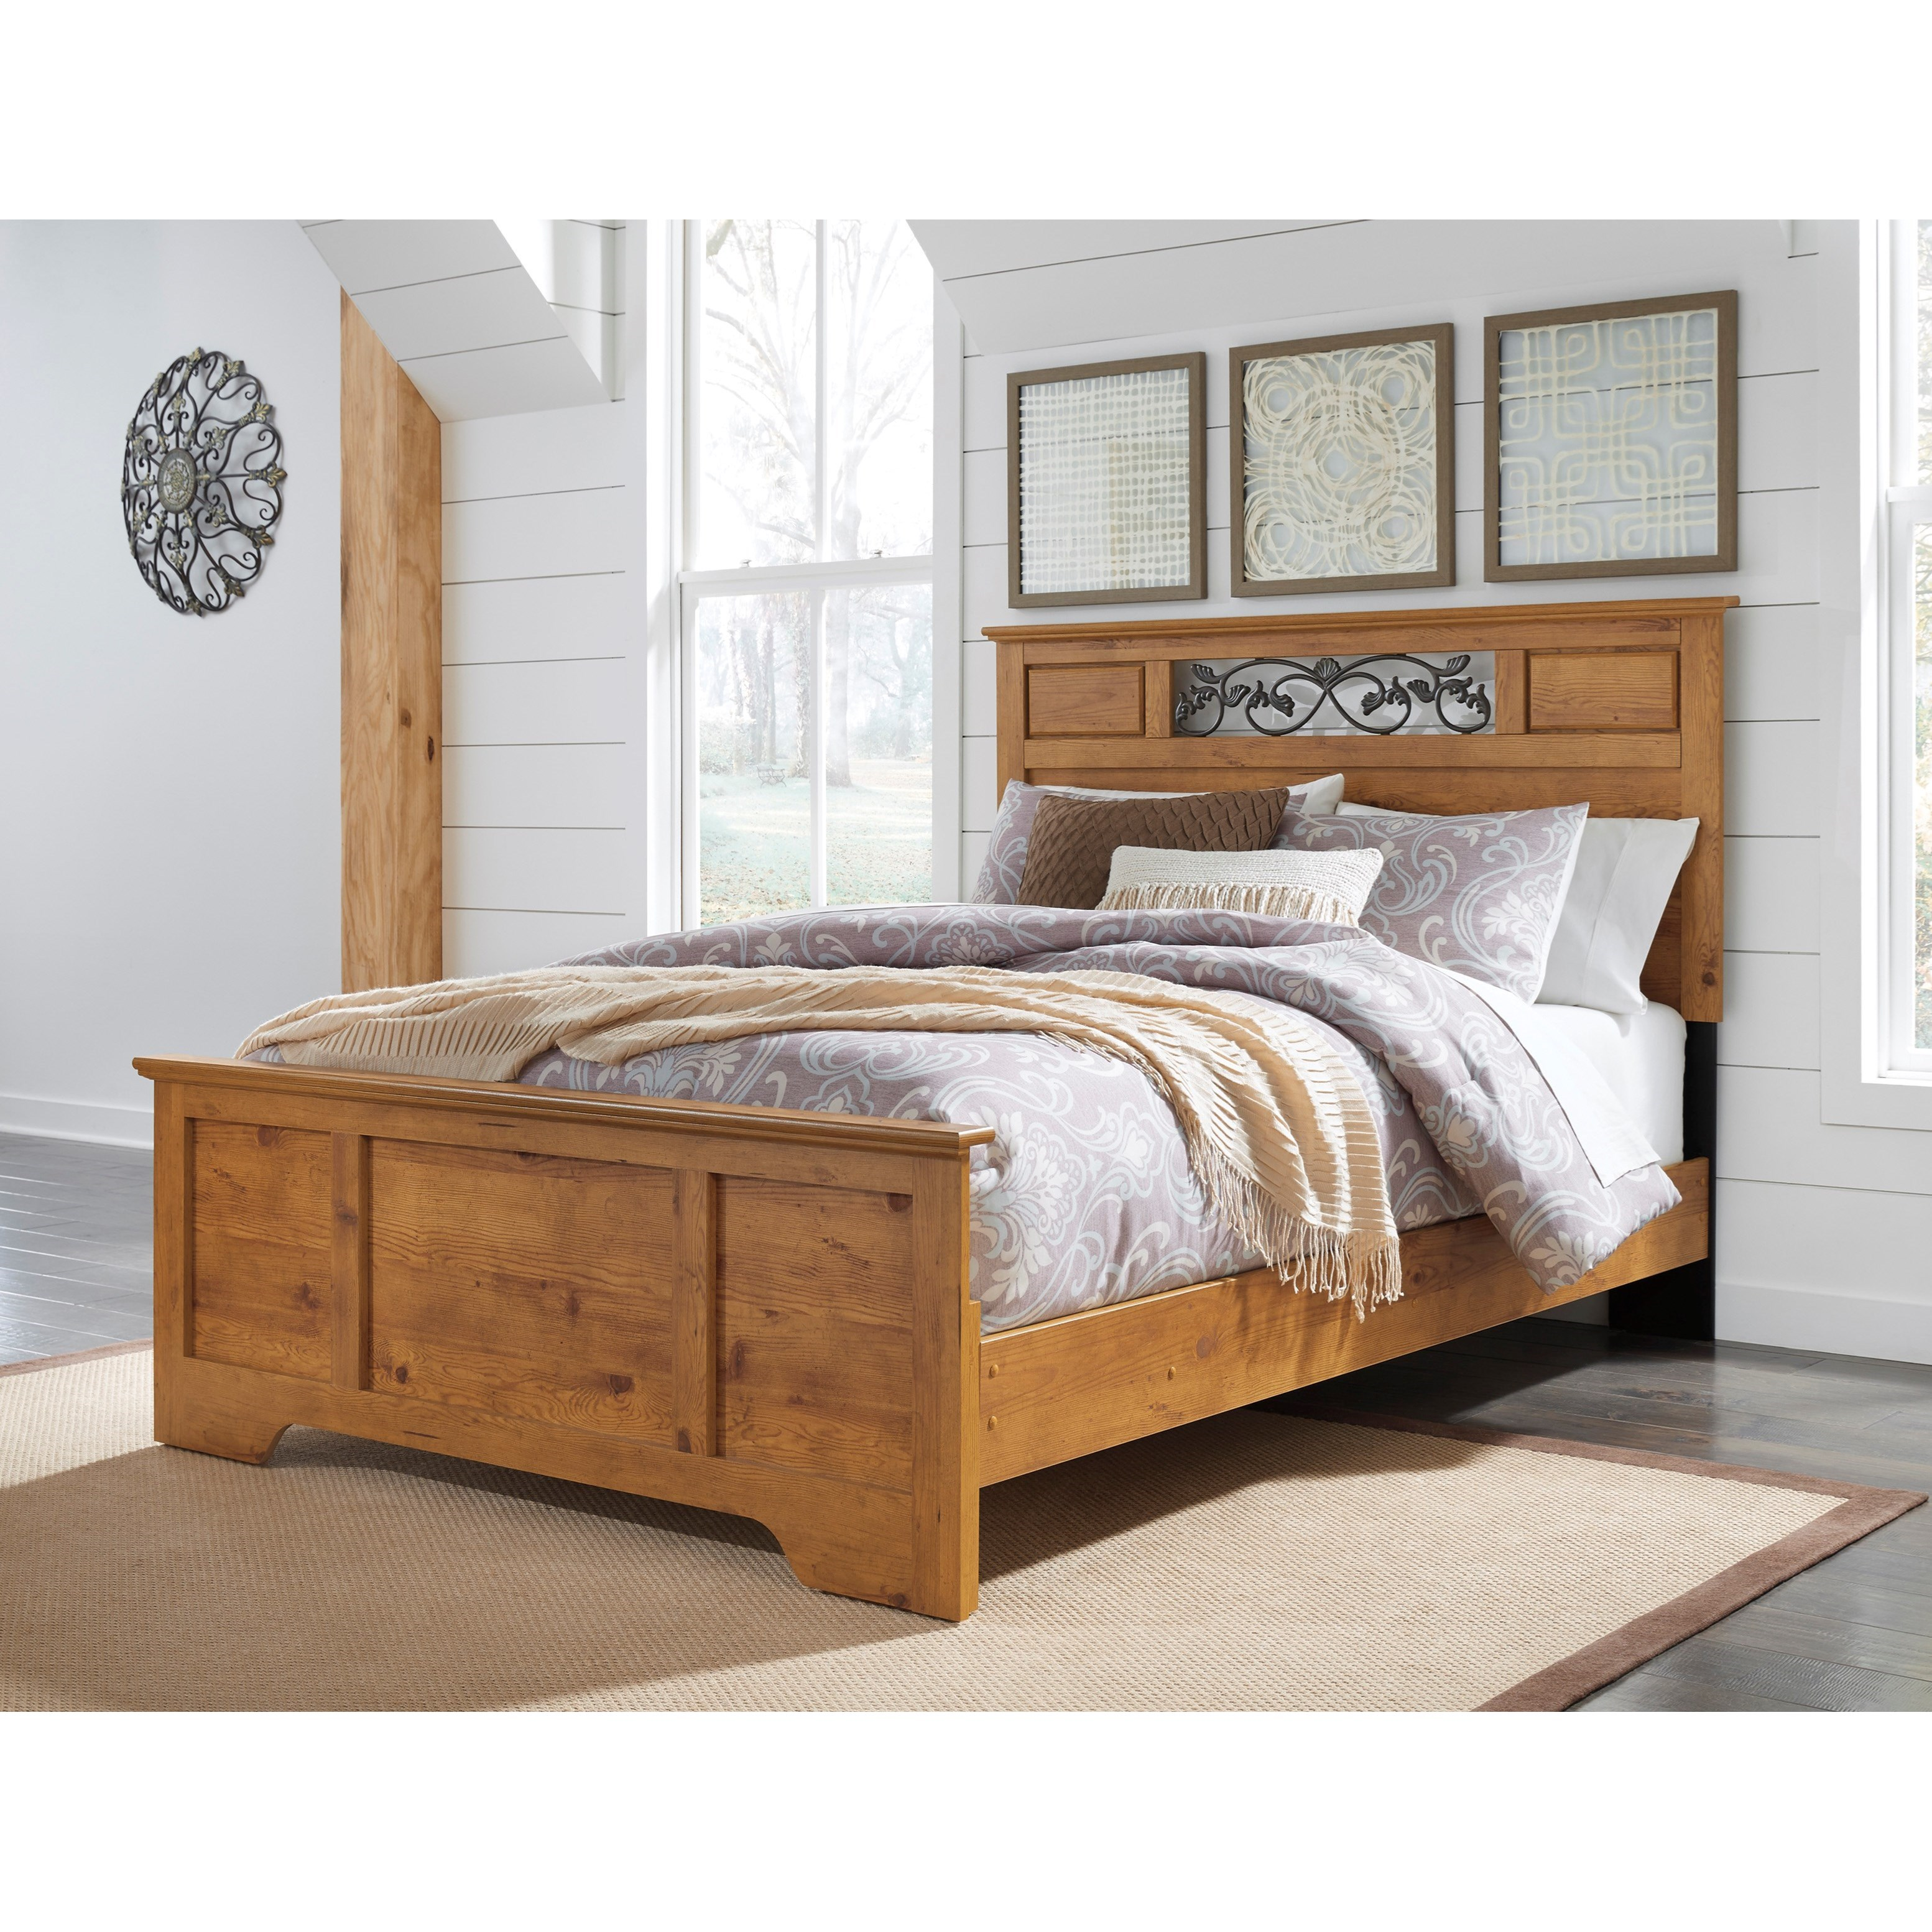 Ashley Furniture Superstore: Signature Design By Ashley Bittersweet Queen Panel Bed